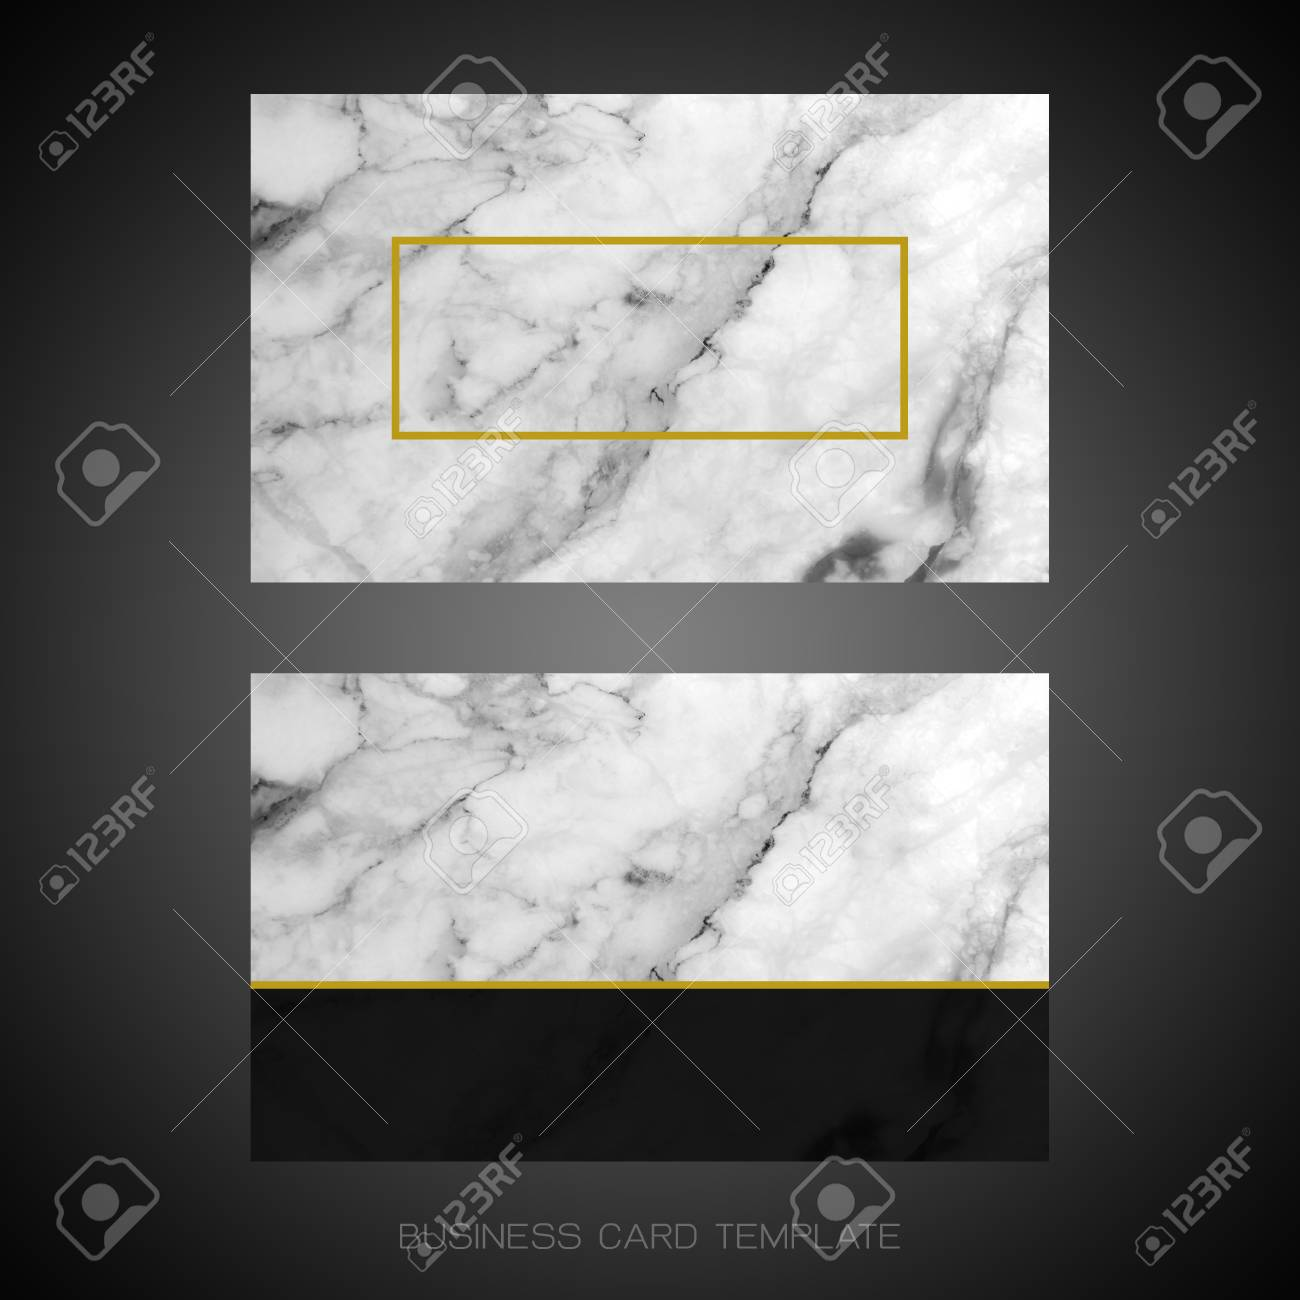 Modern business card layout template black and white marble stock modern business card layout template black and white marble texture background for luxury design fbccfo Images